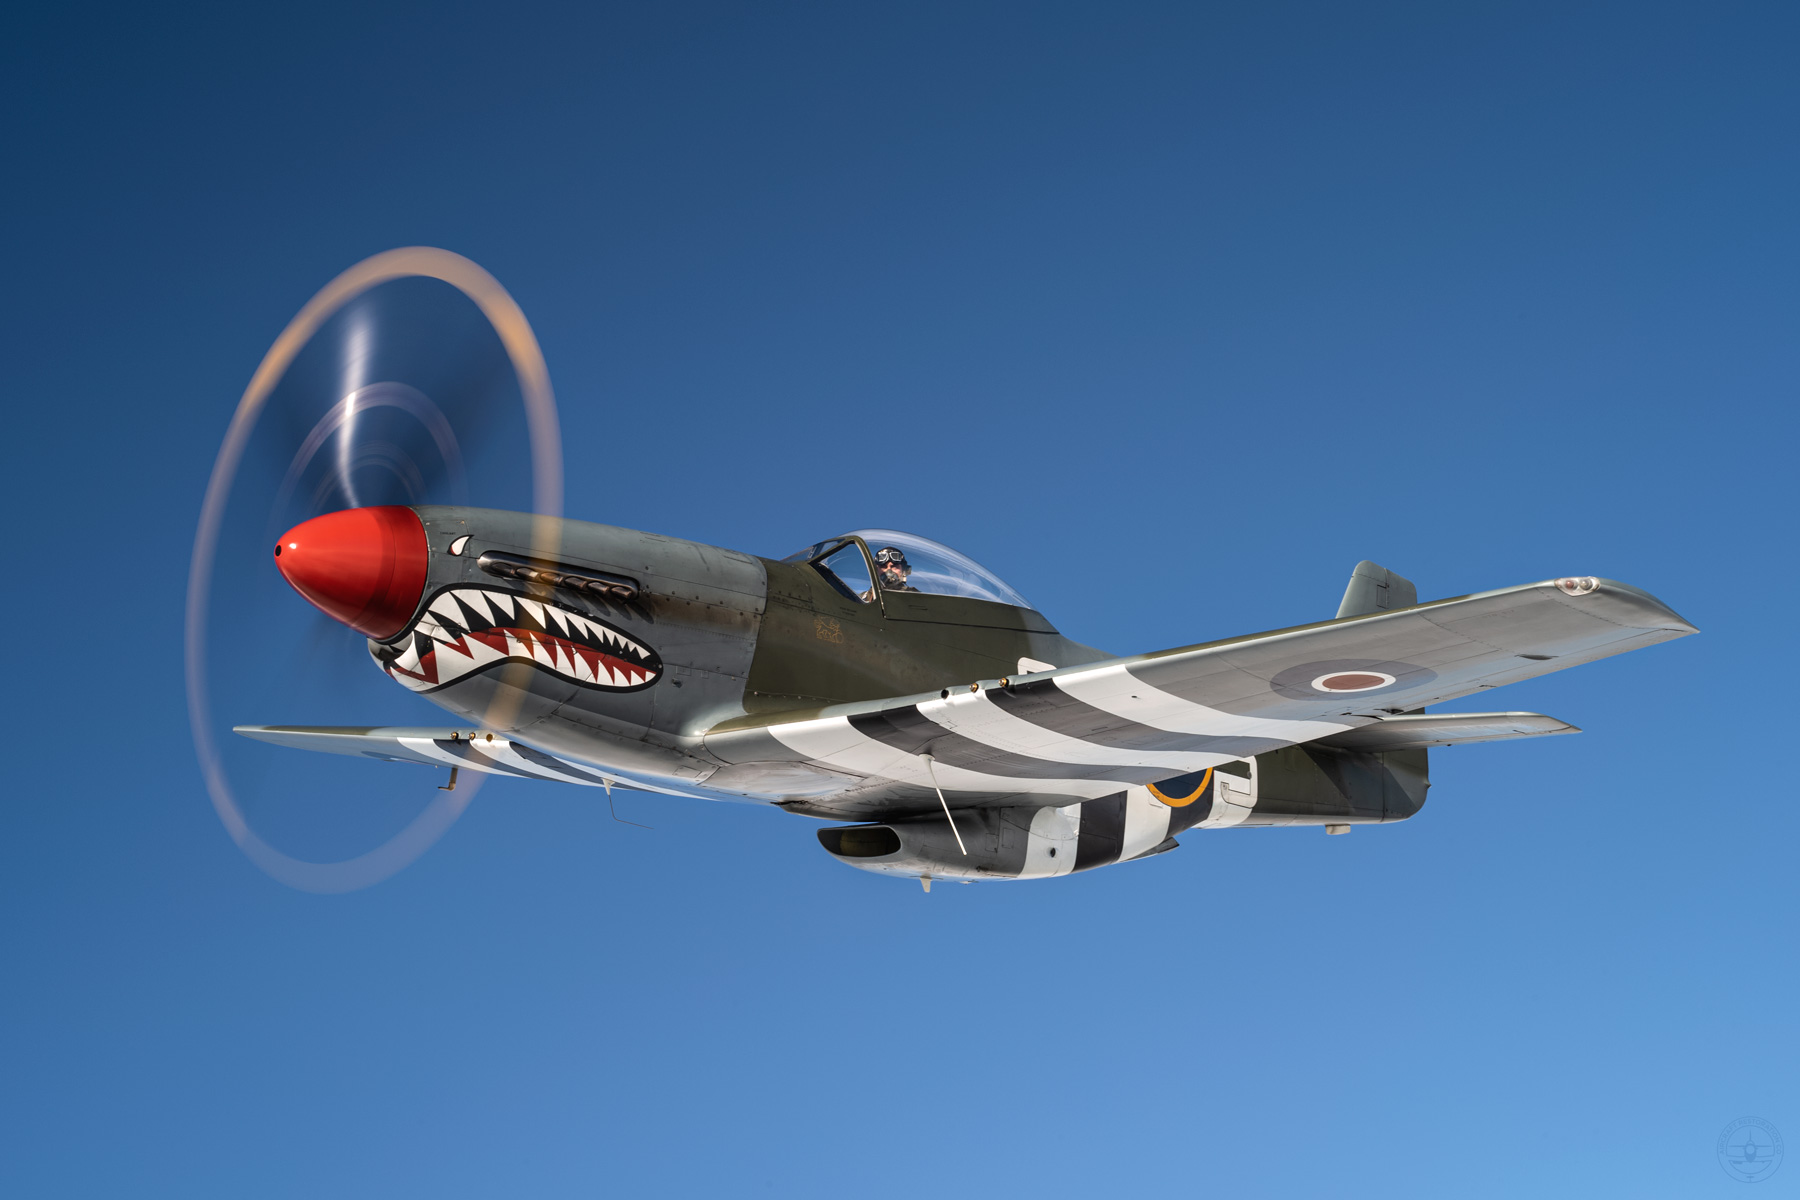 P51-Mustang-TheShark-aircraft-For-Sale.jpg